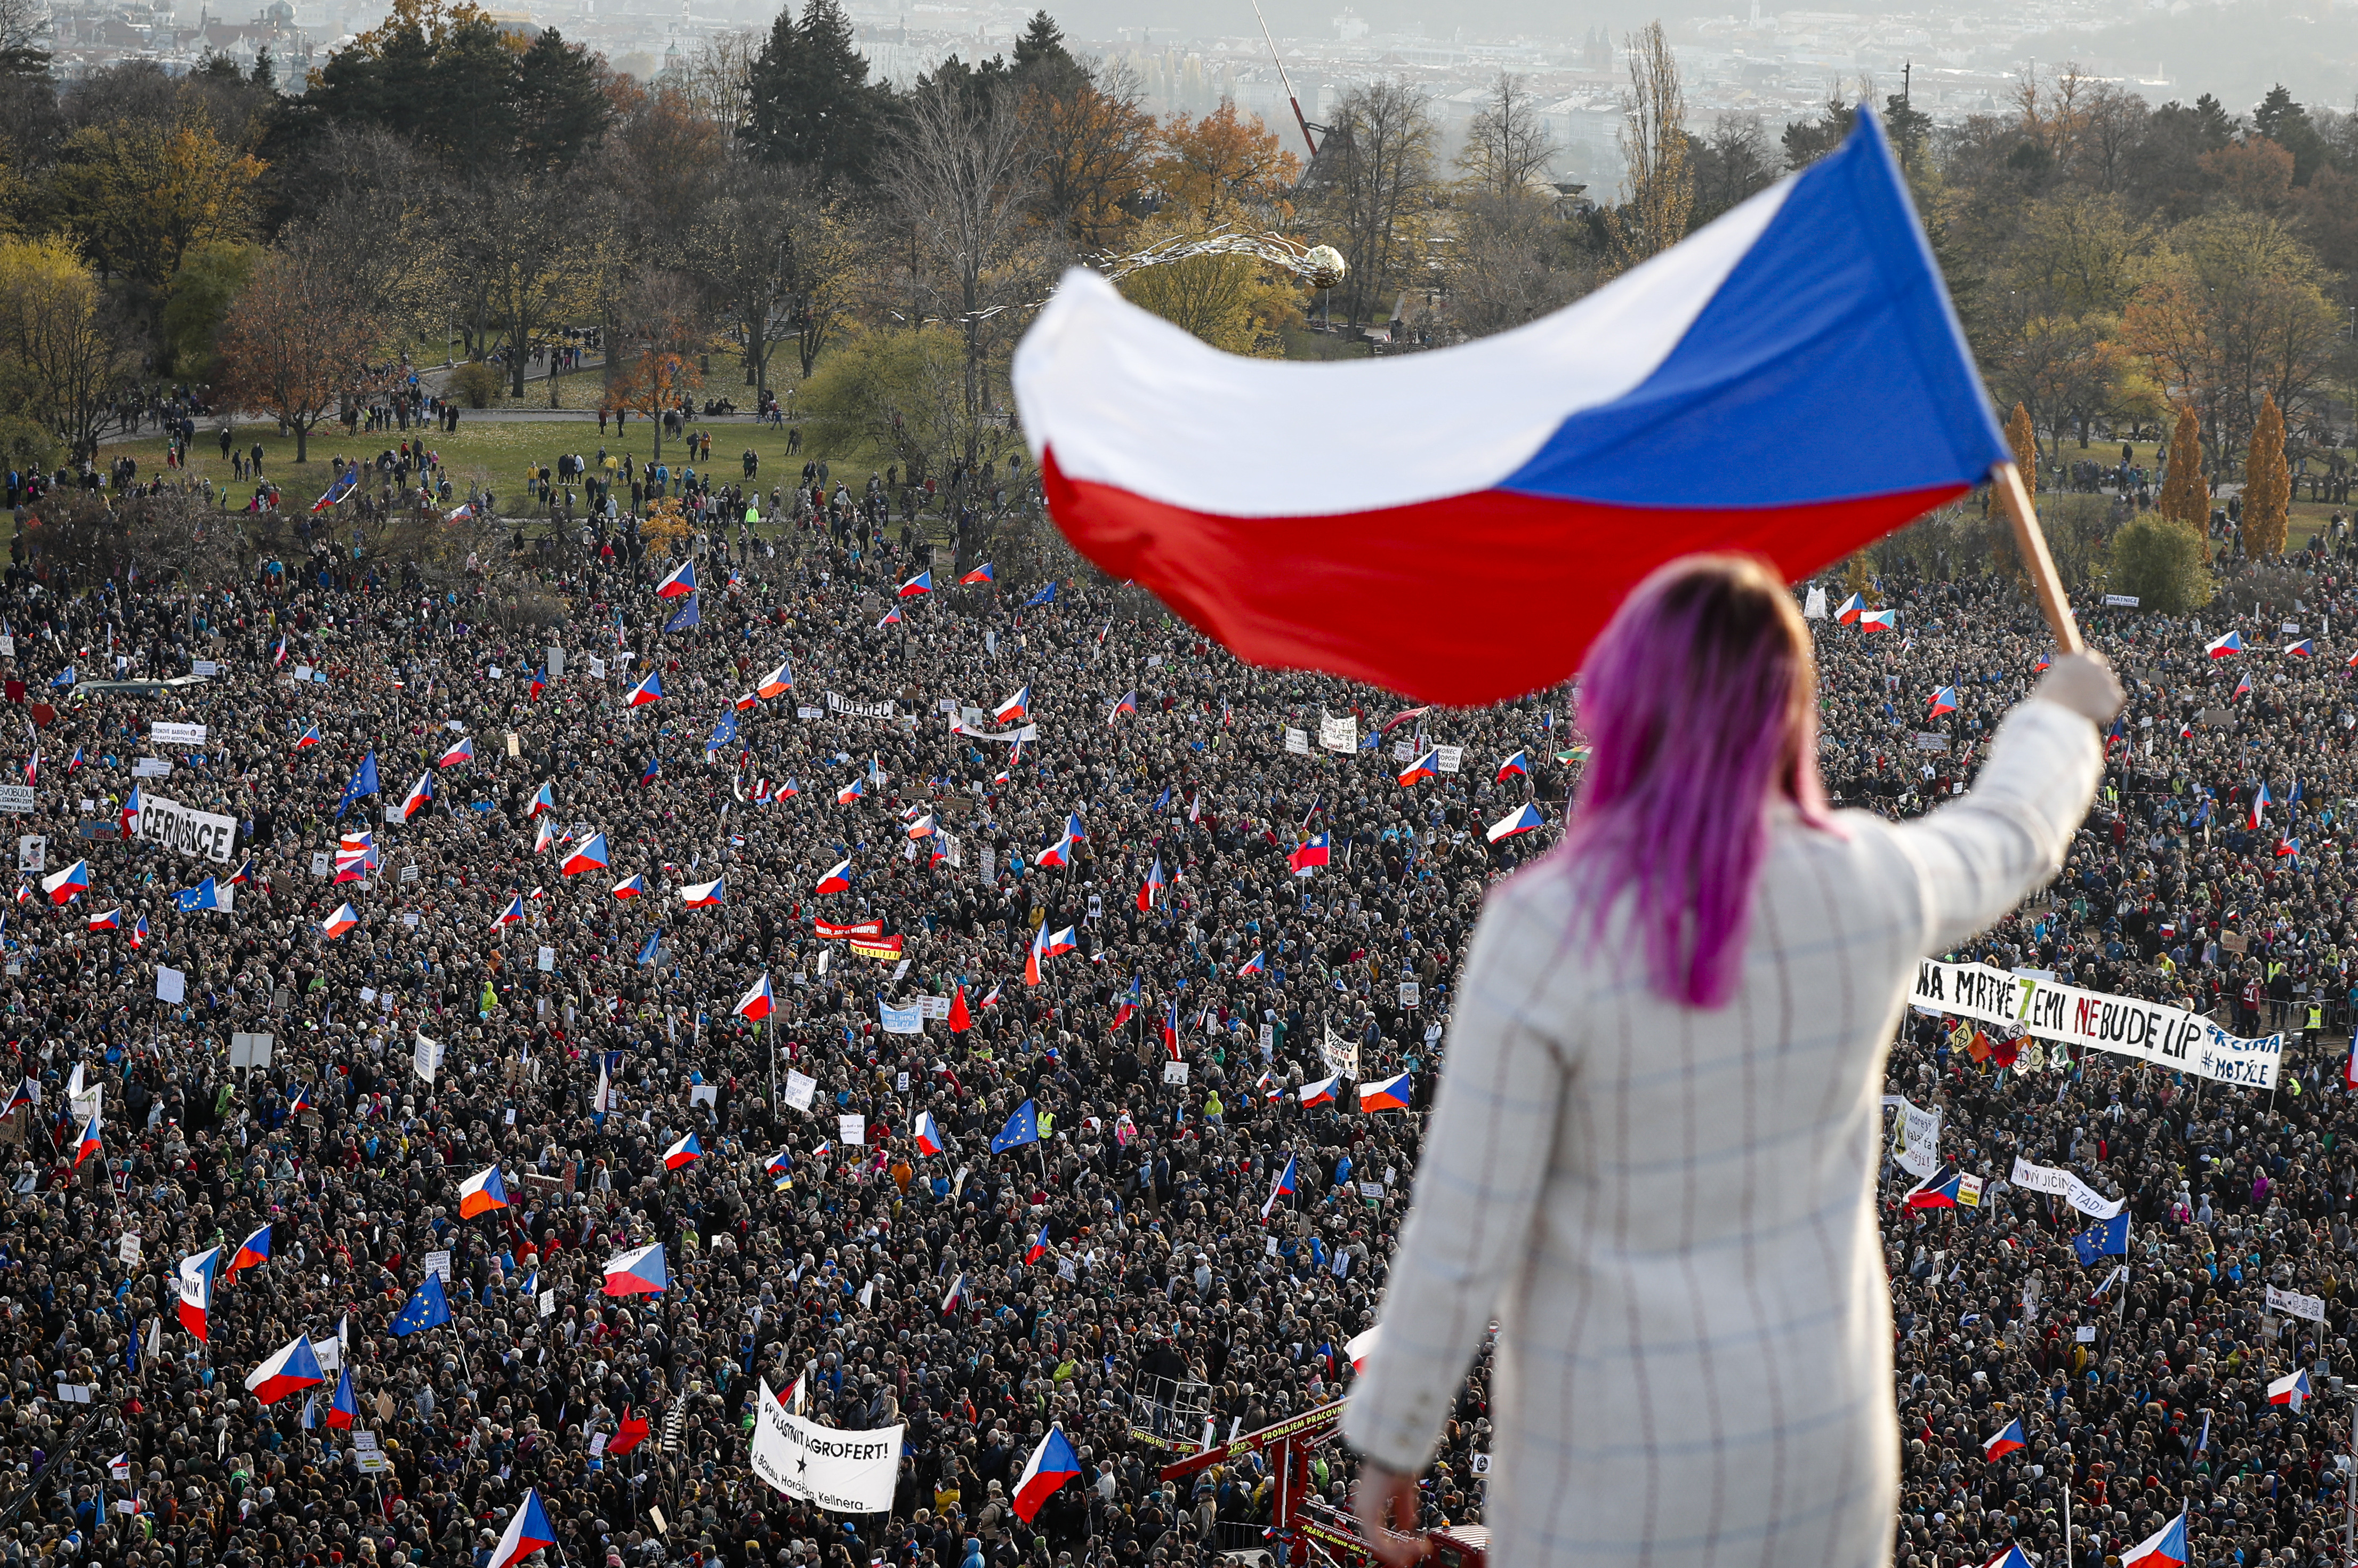 A woman waves a Czech flag from a roof as people take part in a large anti-government protest in Prague, Czech Republic, Saturday, Nov. 16, 2019.